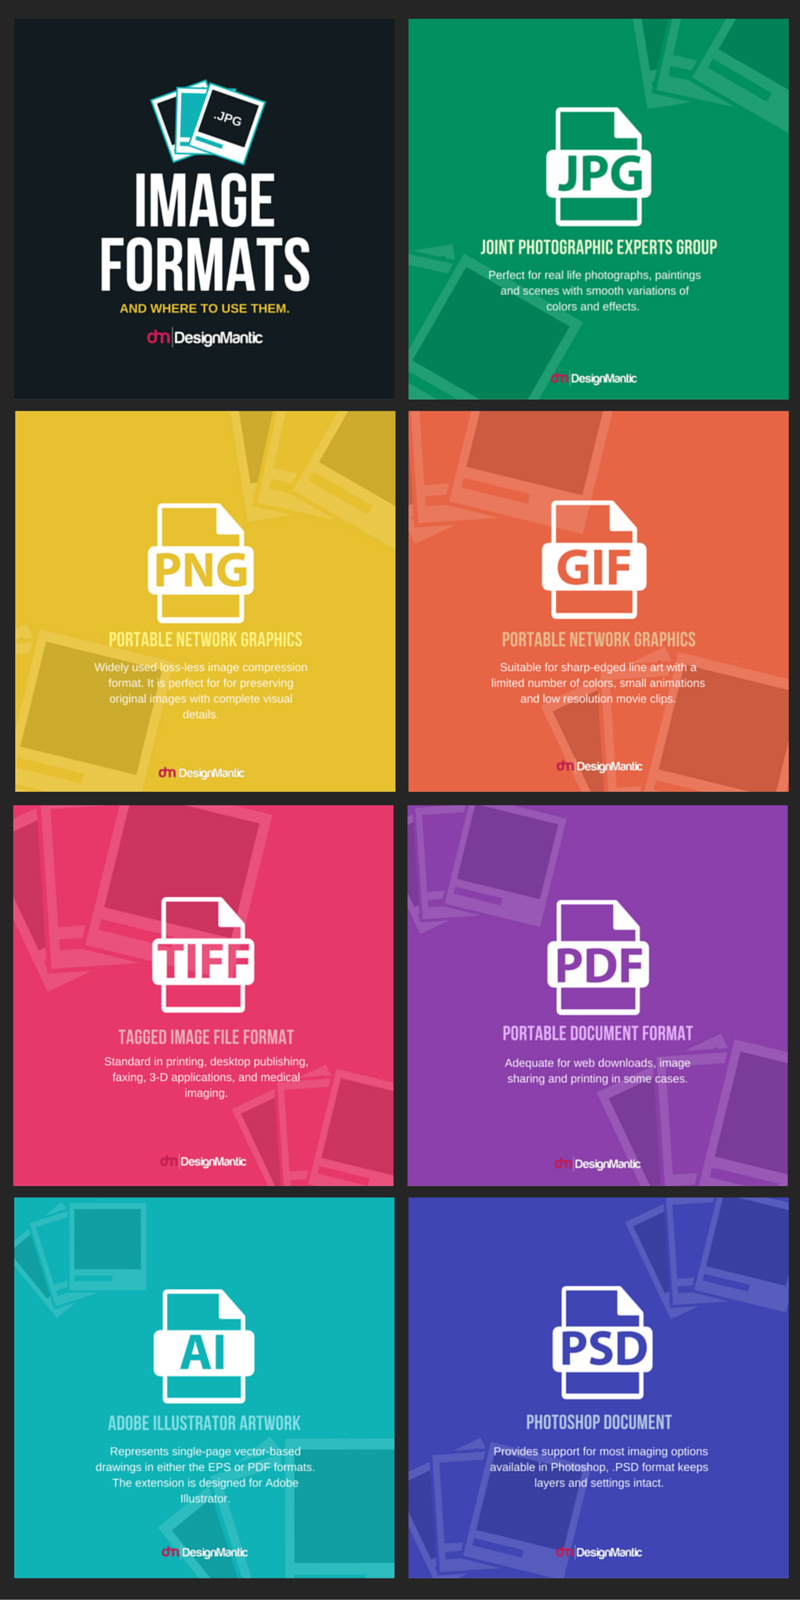 Infographic provides an overview of different image file formats and their uses